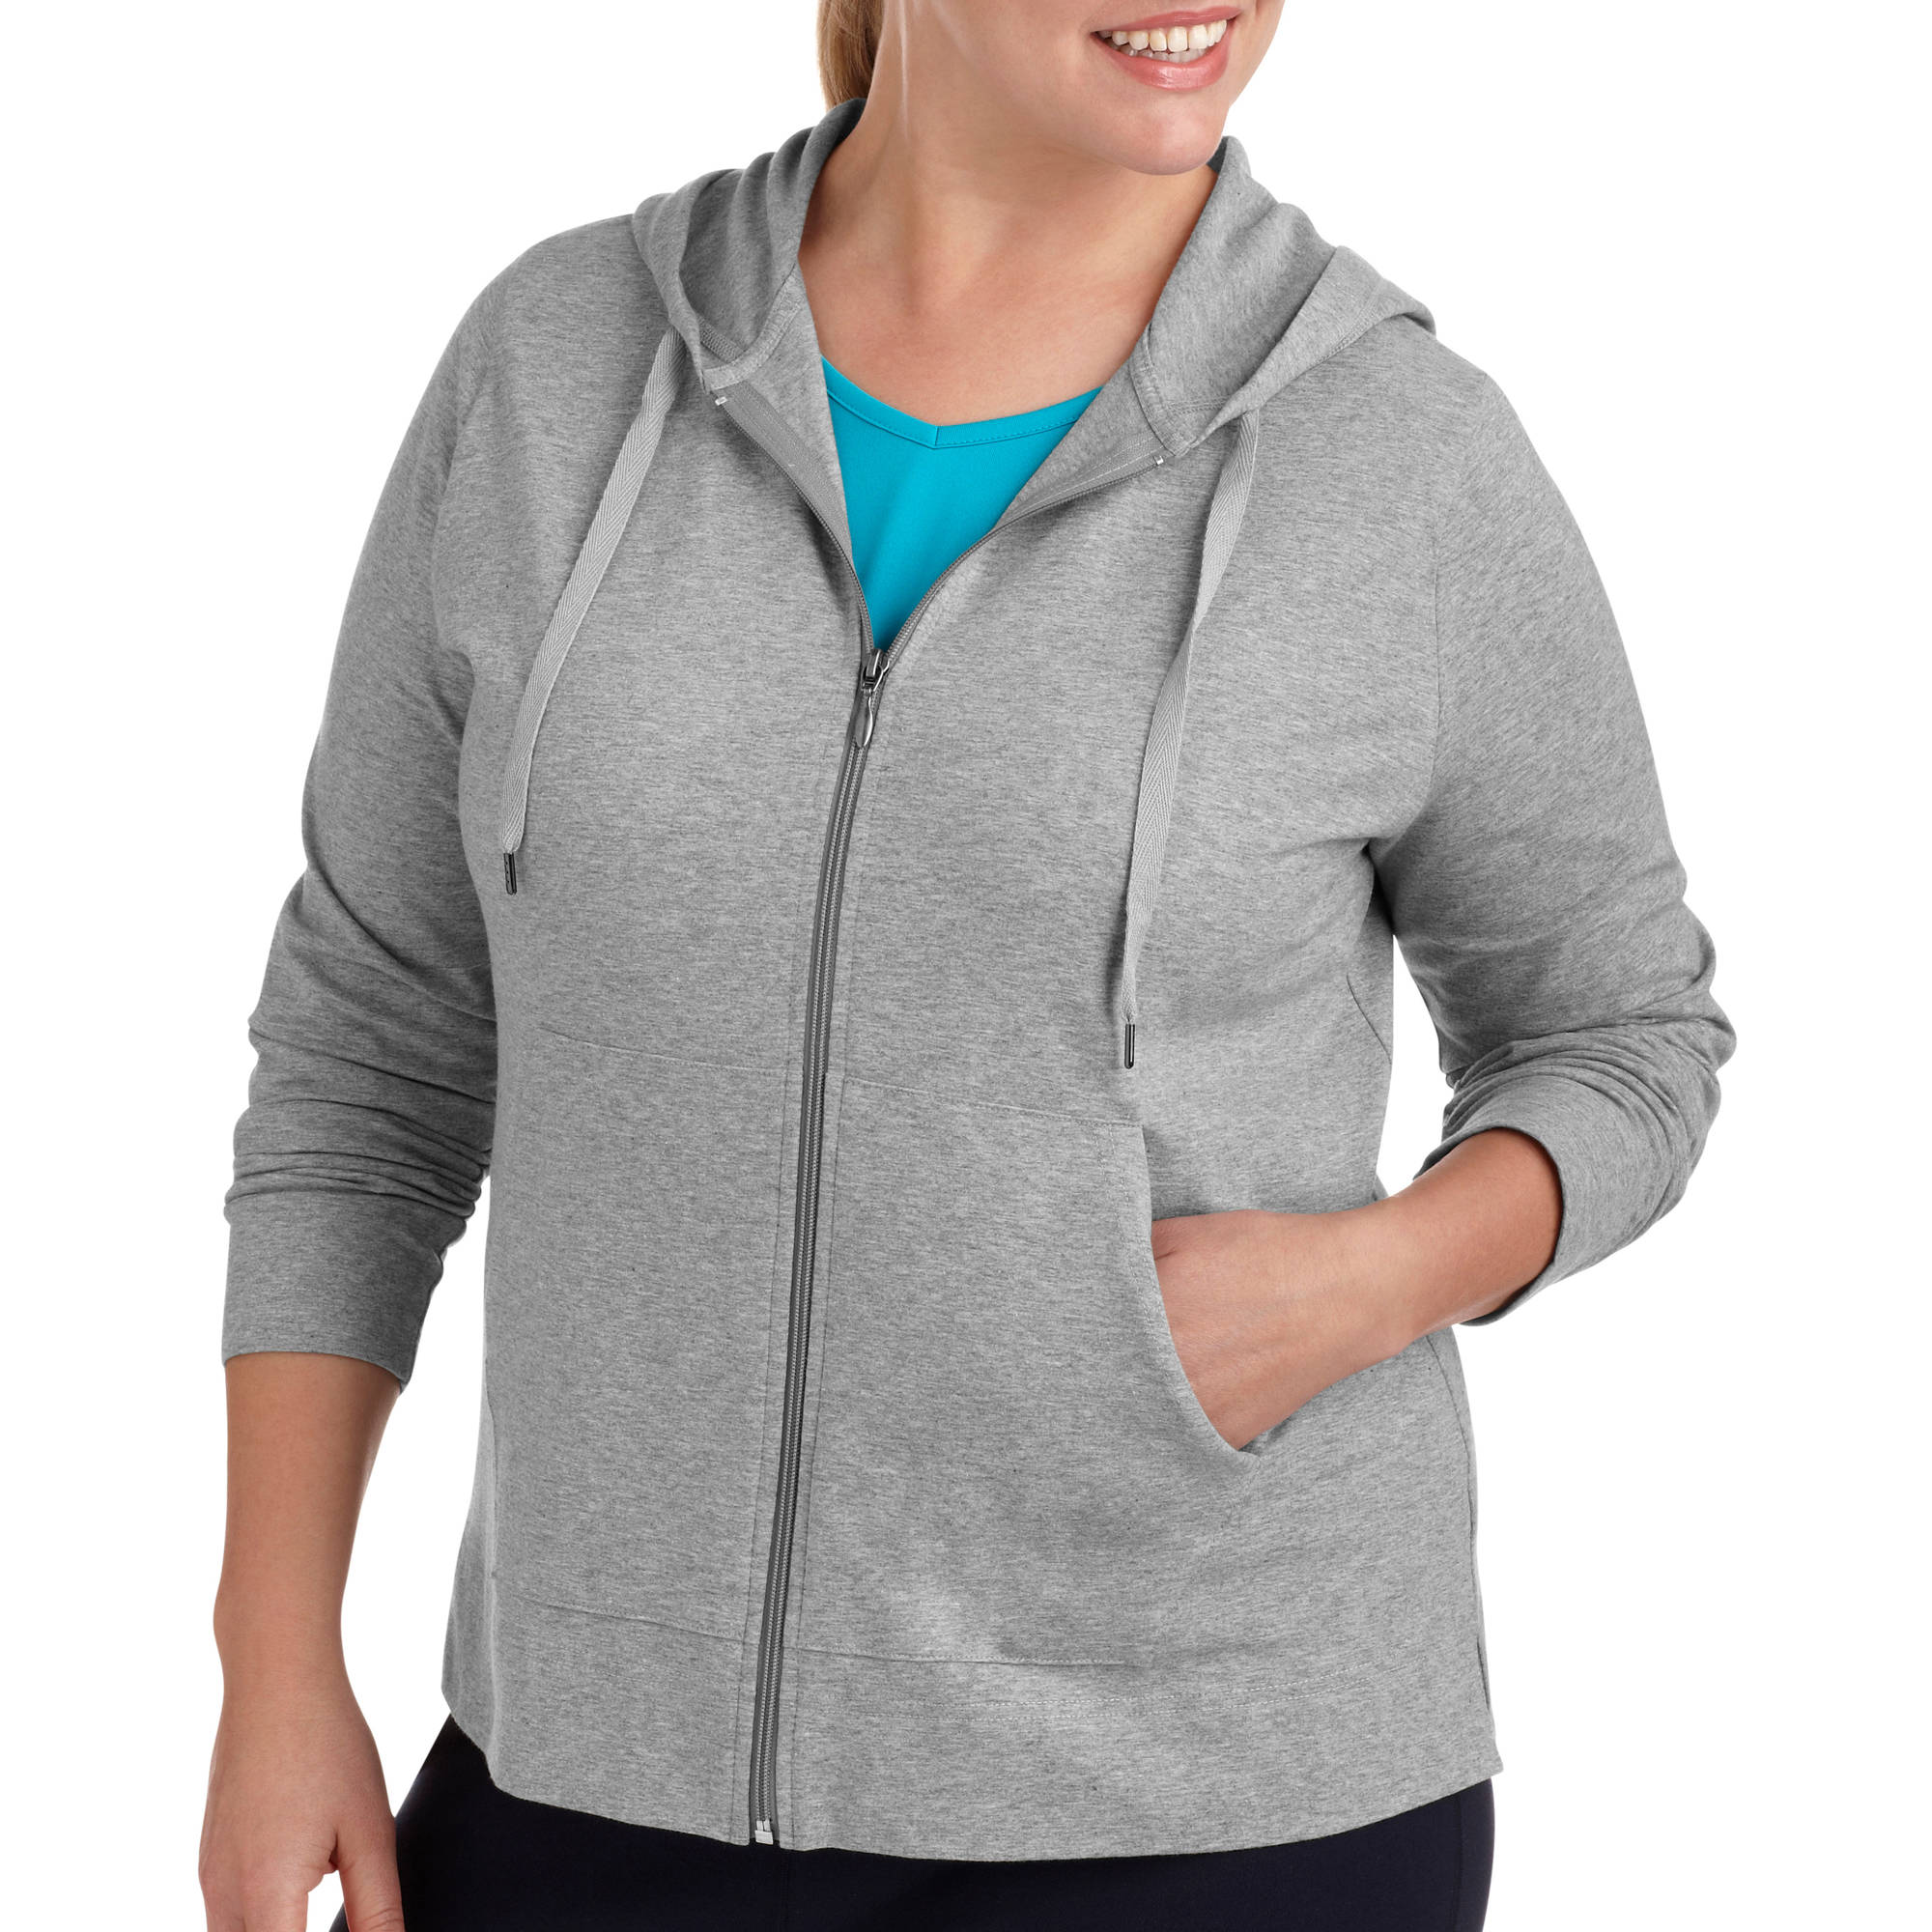 Danskin Now Womens Plus-Size Dri-More Zip Up Hoodie